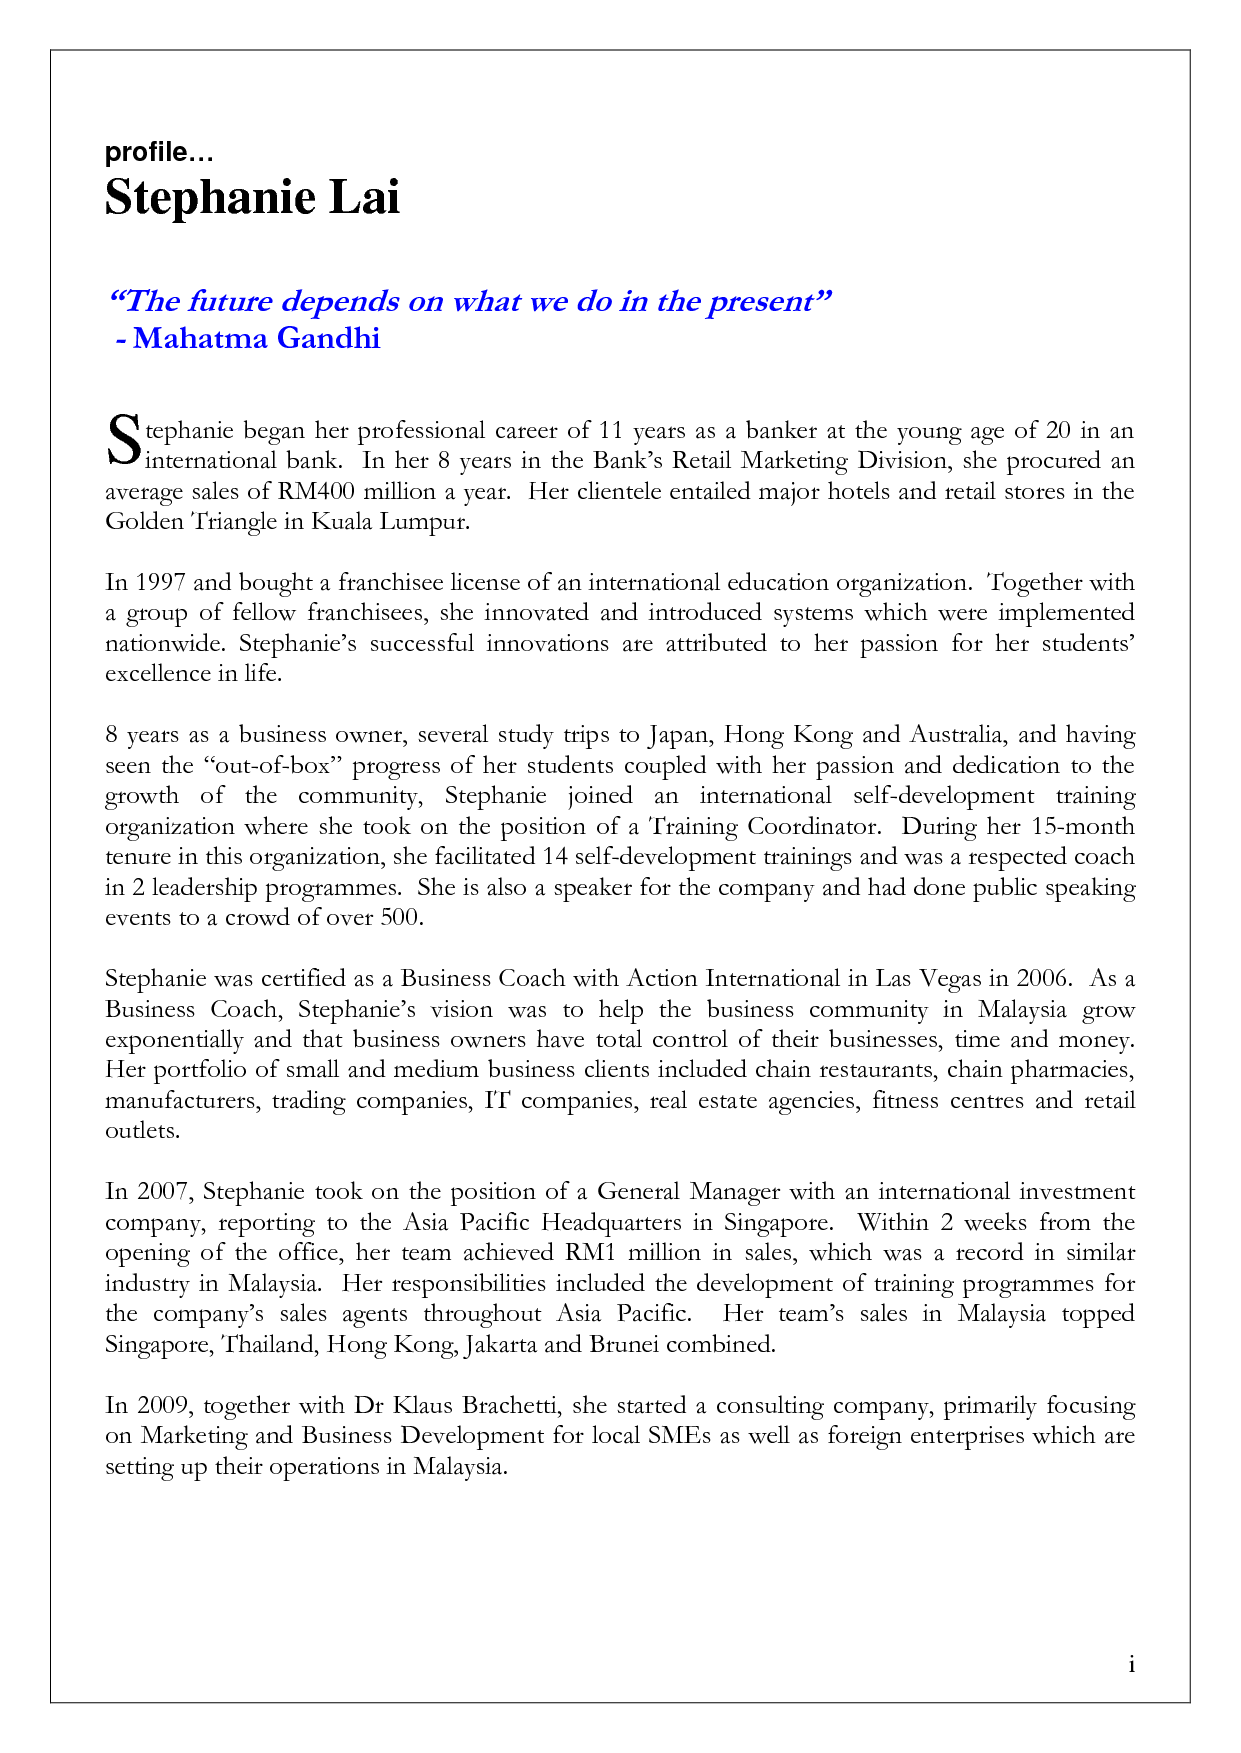 Essay about choices and decisions